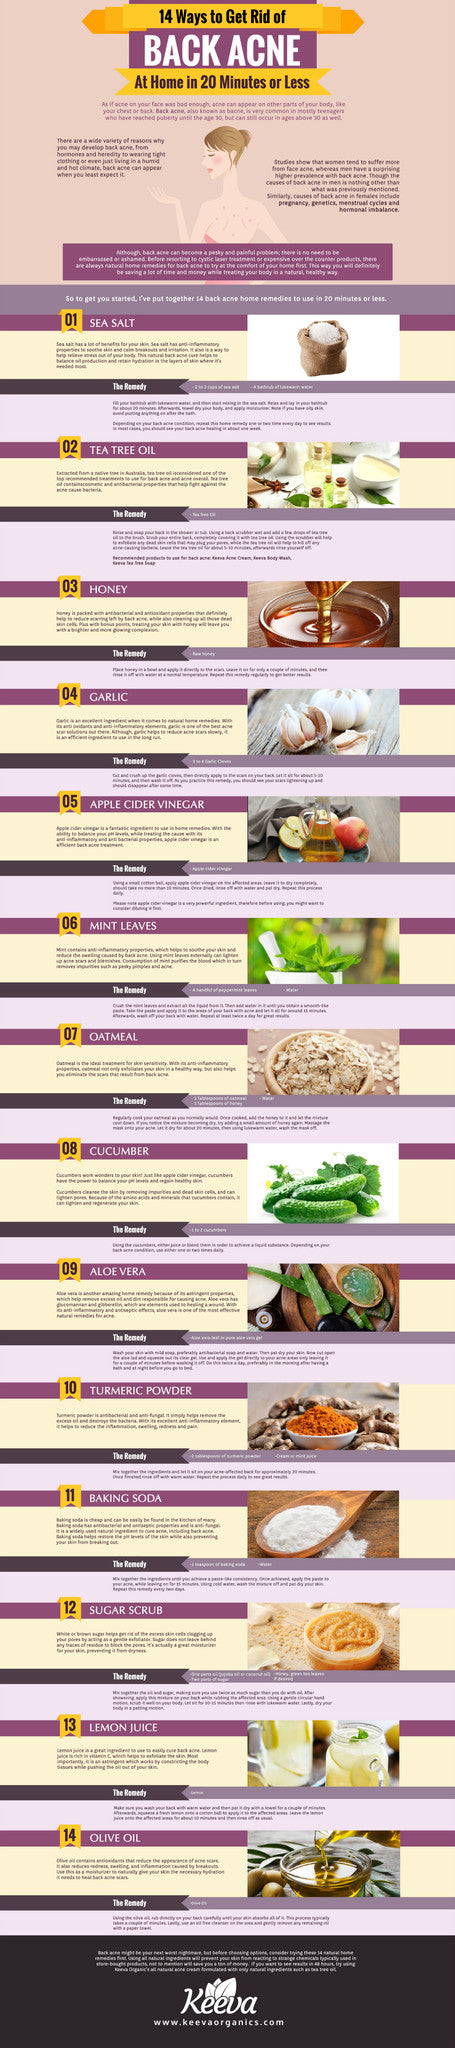 14 Ways to Get Rid of Bacne Infographic